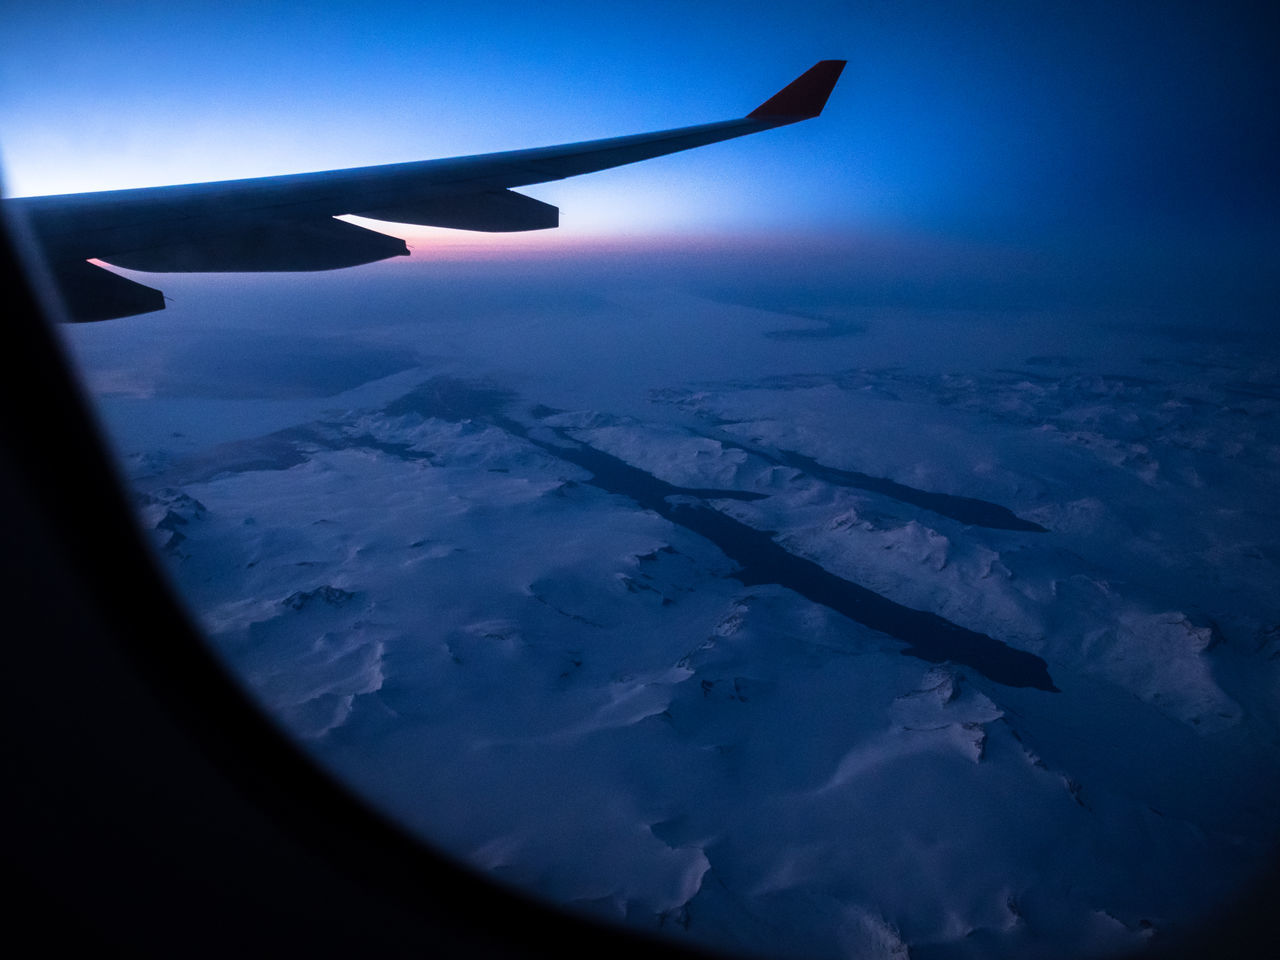 CROPPED IMAGE OF AIRPLANE WING OVER LANDSCAPE